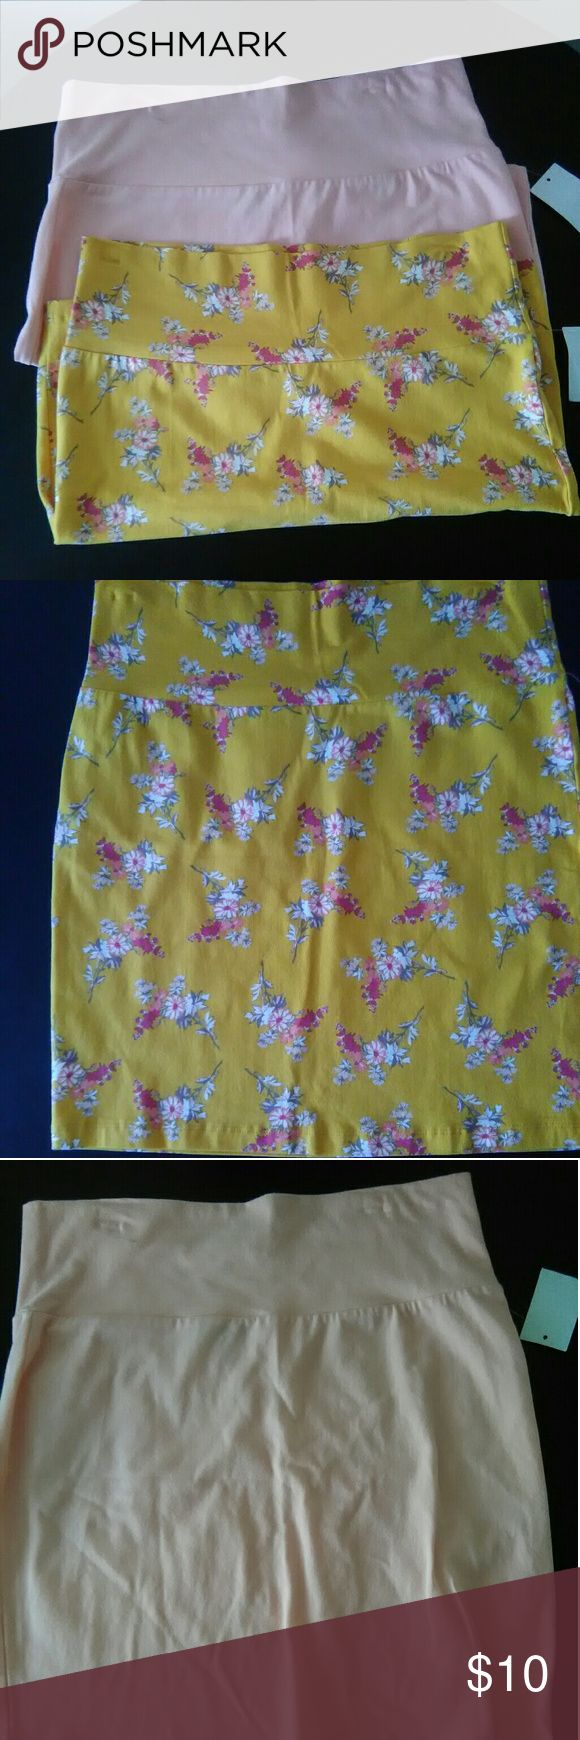 2 NWT Large Charlotte Russe Bodycon Skirt Bundle These New With Tags Bodycon skirts are the perfect addition to your wardrobe. These two skirts are have forgiving fabric blend of Cotton and Spandex so it is comfy for every body type. One skirt is is a mustard yellow with Floral accents in hues of red, peach, tan, olive, orange and white.  The second skirt is a Solid light  pink. Snatch this bundle up today. Item has been cross posted. Charlotte Russe Skirts Mini